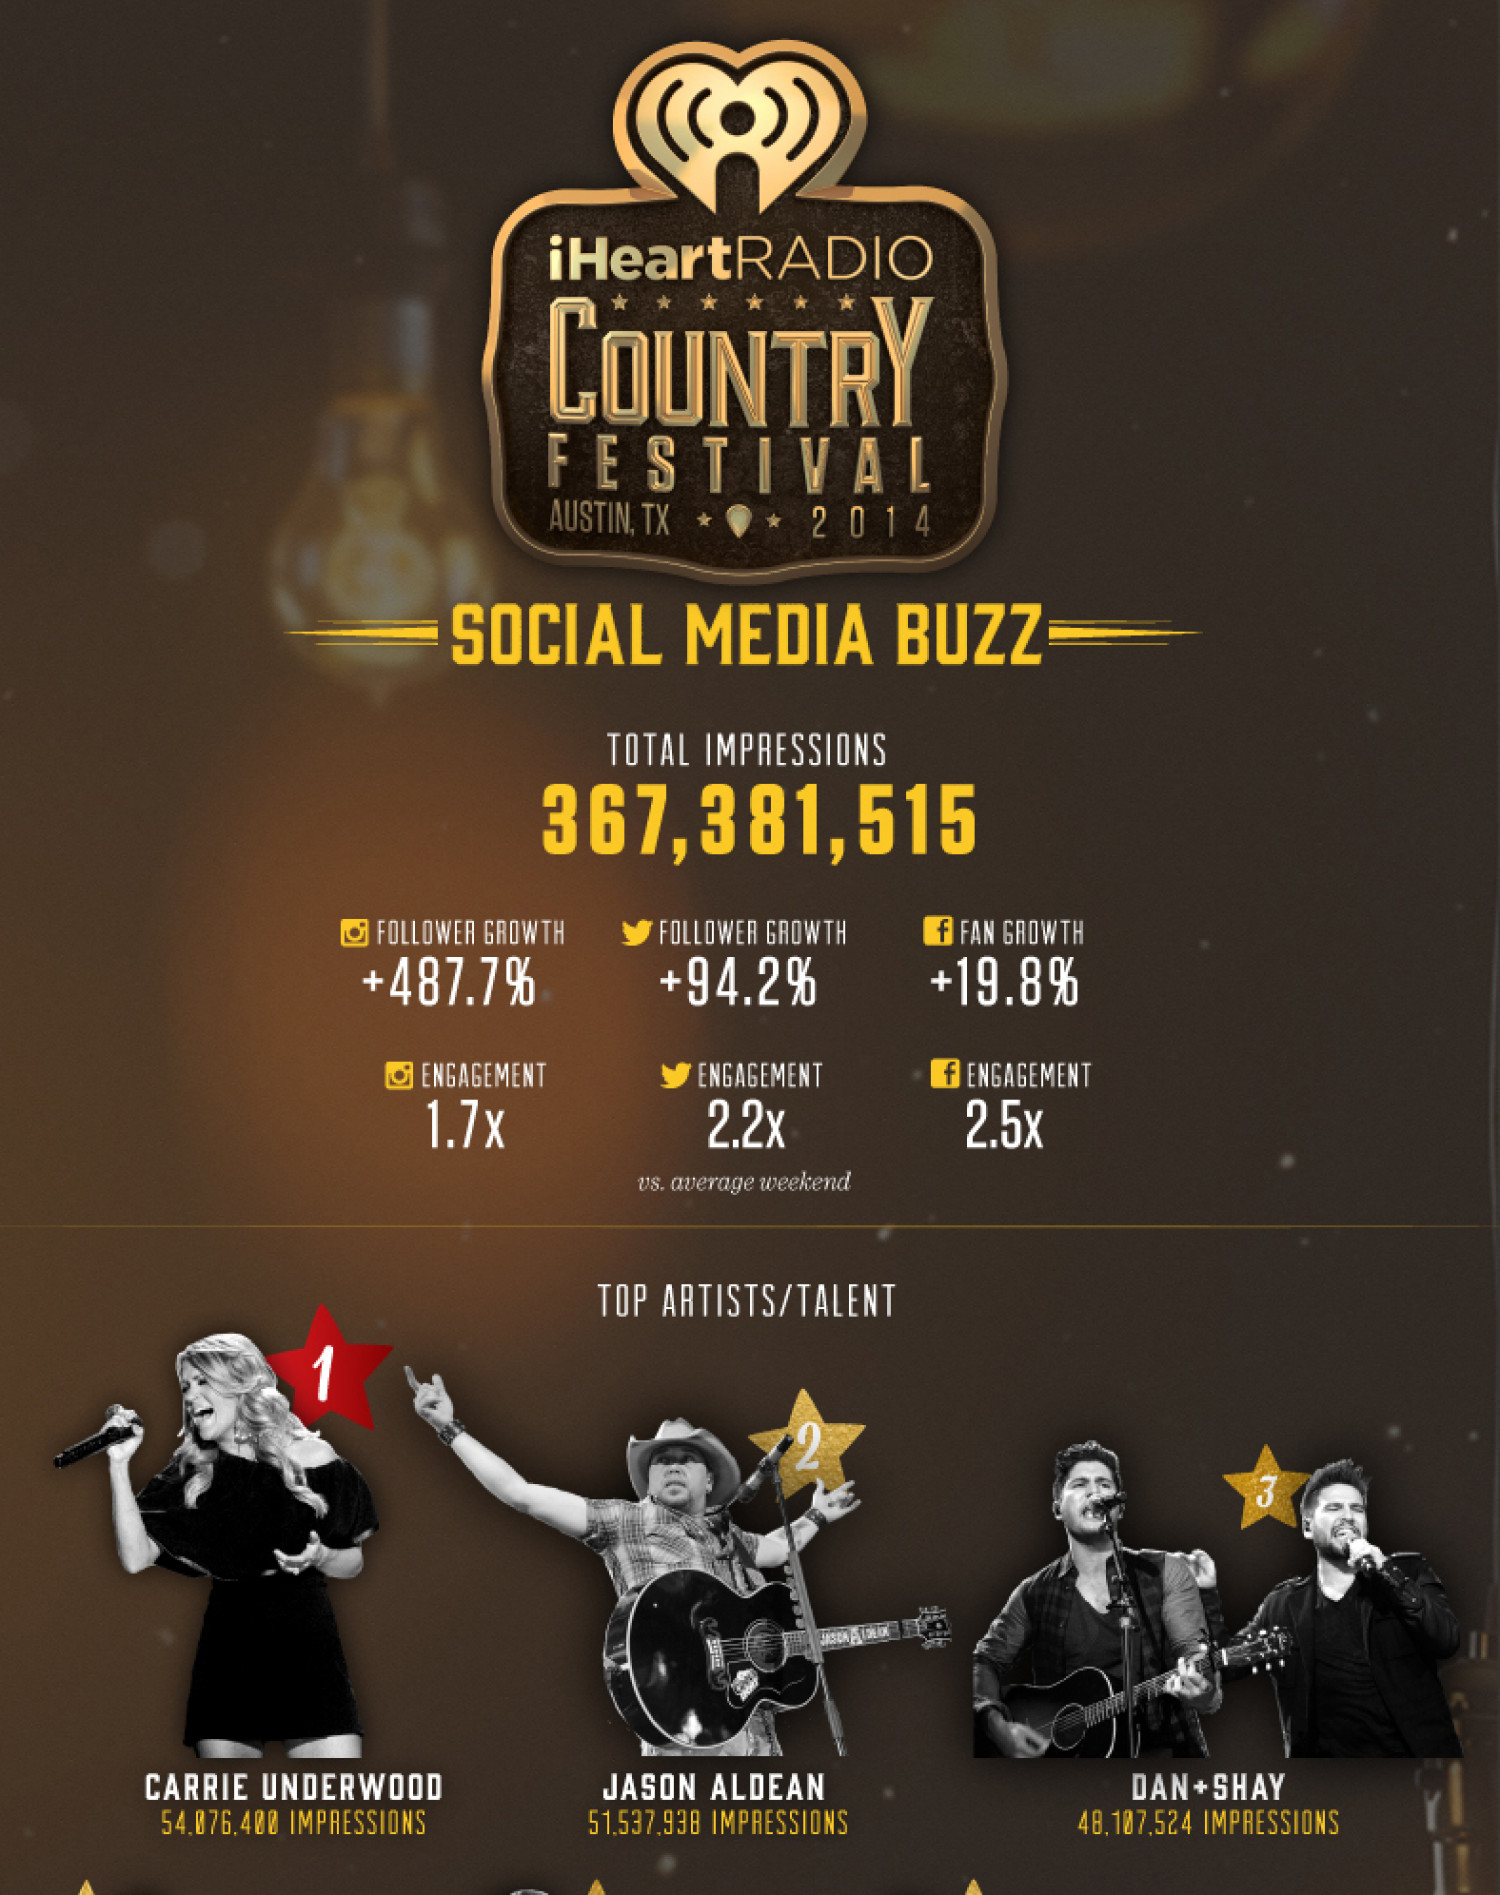 Country Festival Austin, TX 2014 Infographic